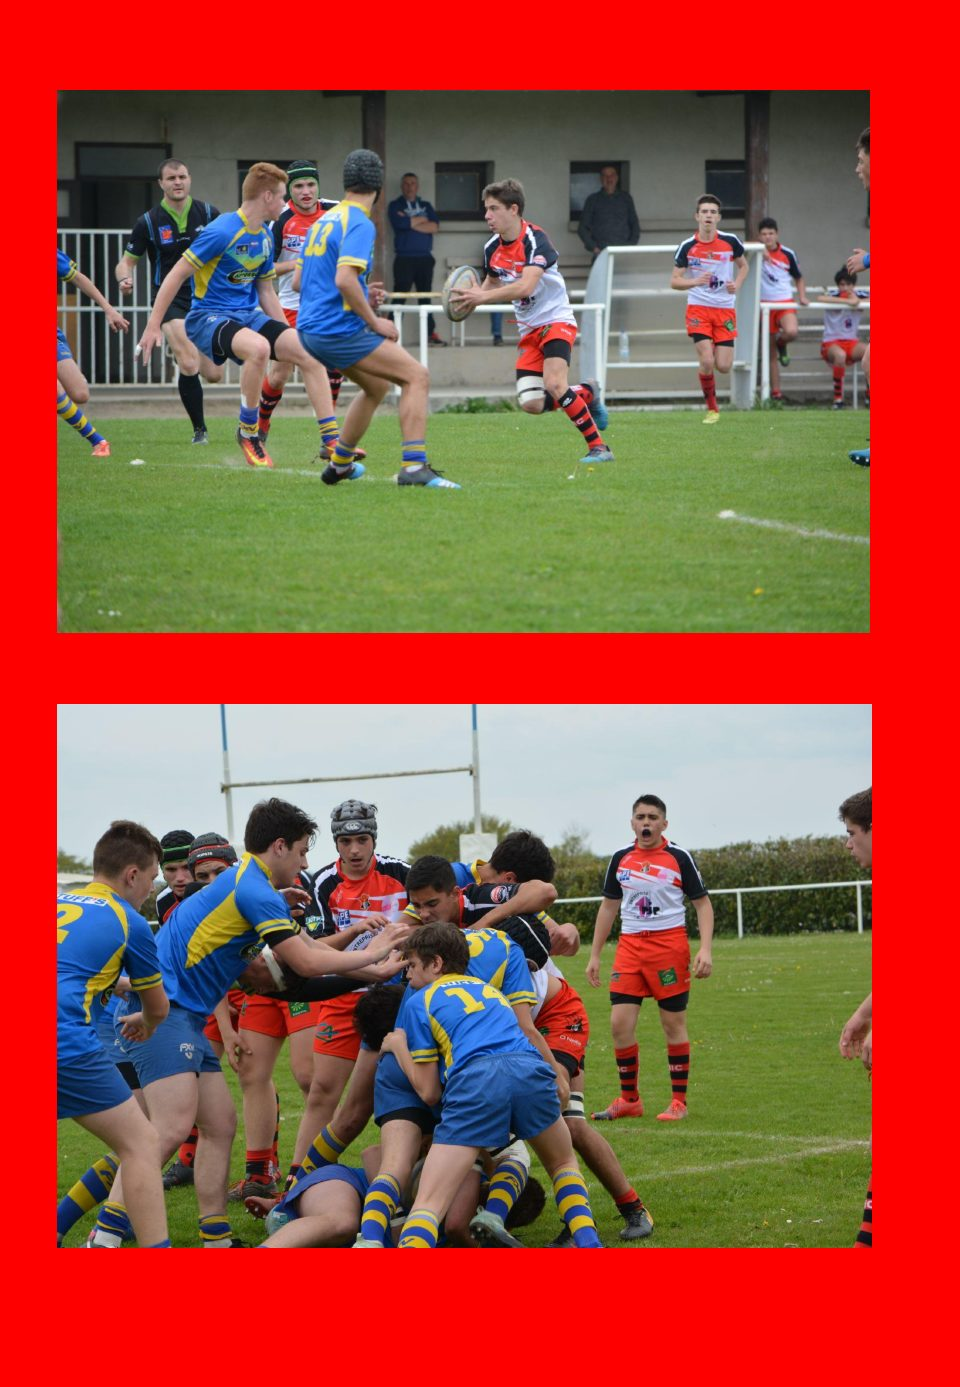 http://scg-rugby.com/wp-content/uploads/2018/04/CADETS-MATCH-MENDE3-pdf-2.jpg